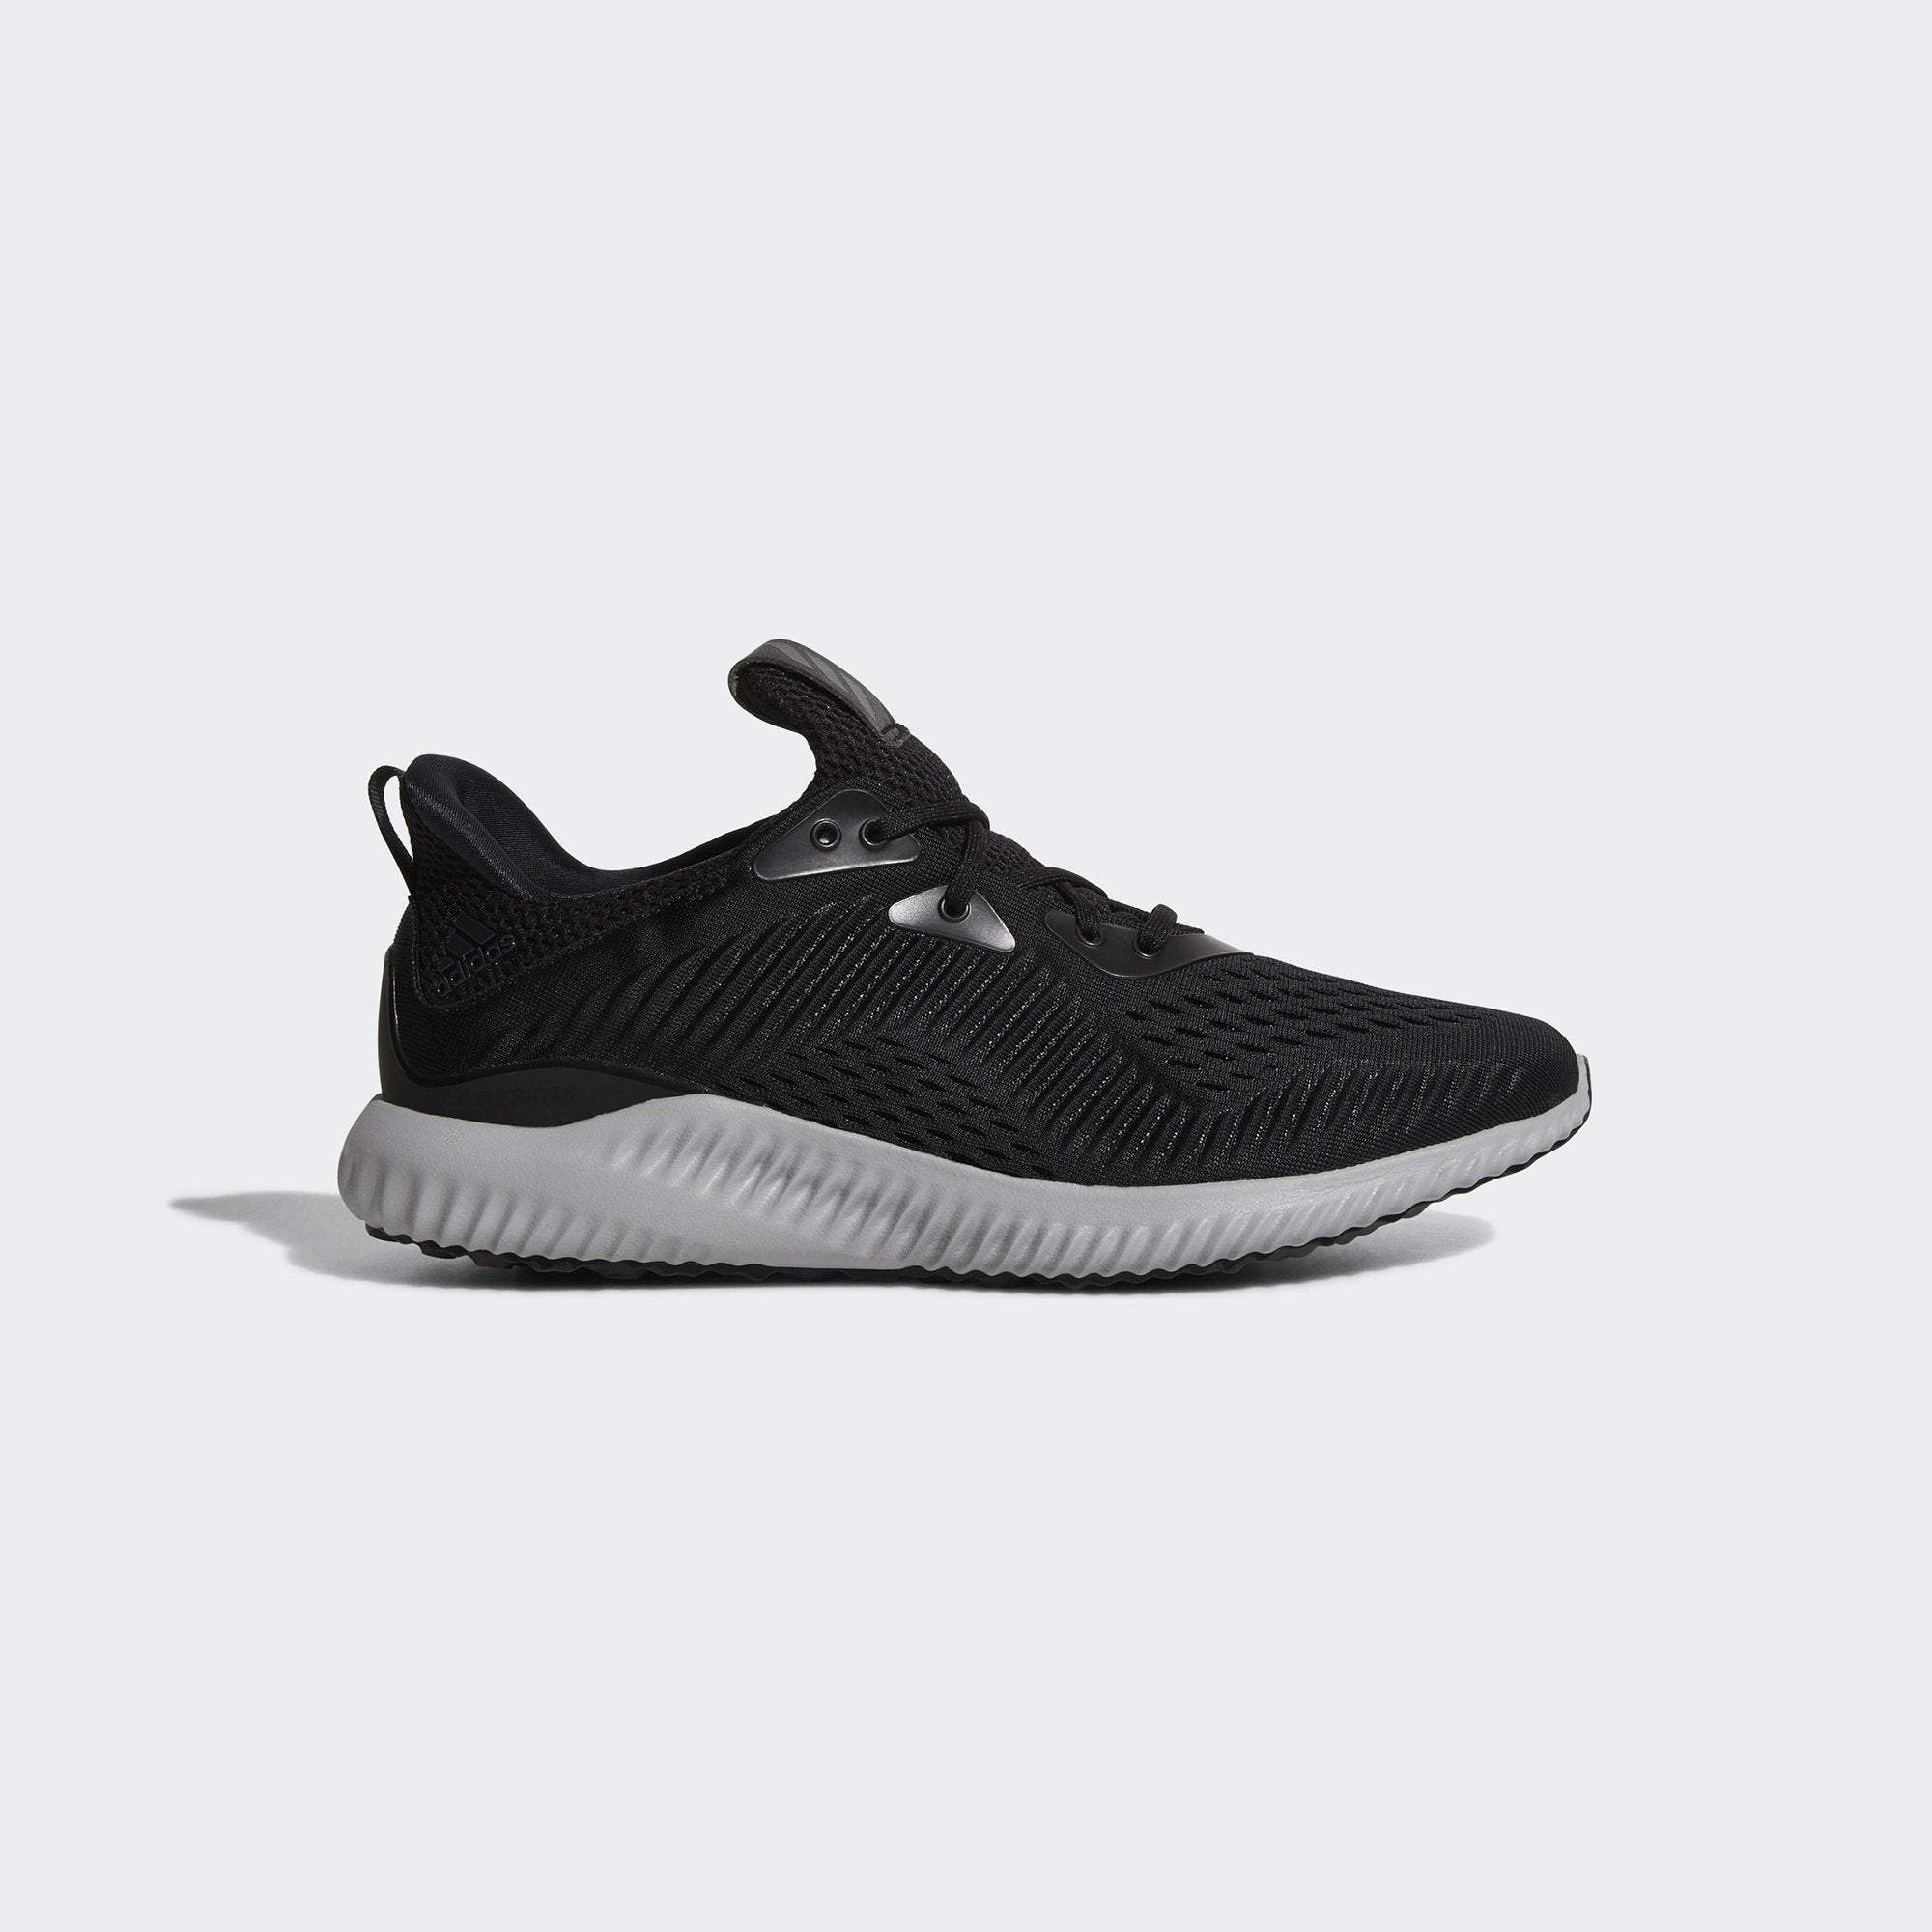 a020b071e12b5 Buy Adidas Men Alphabounce Engineered Mesh Running Shoes Online in  Singapore